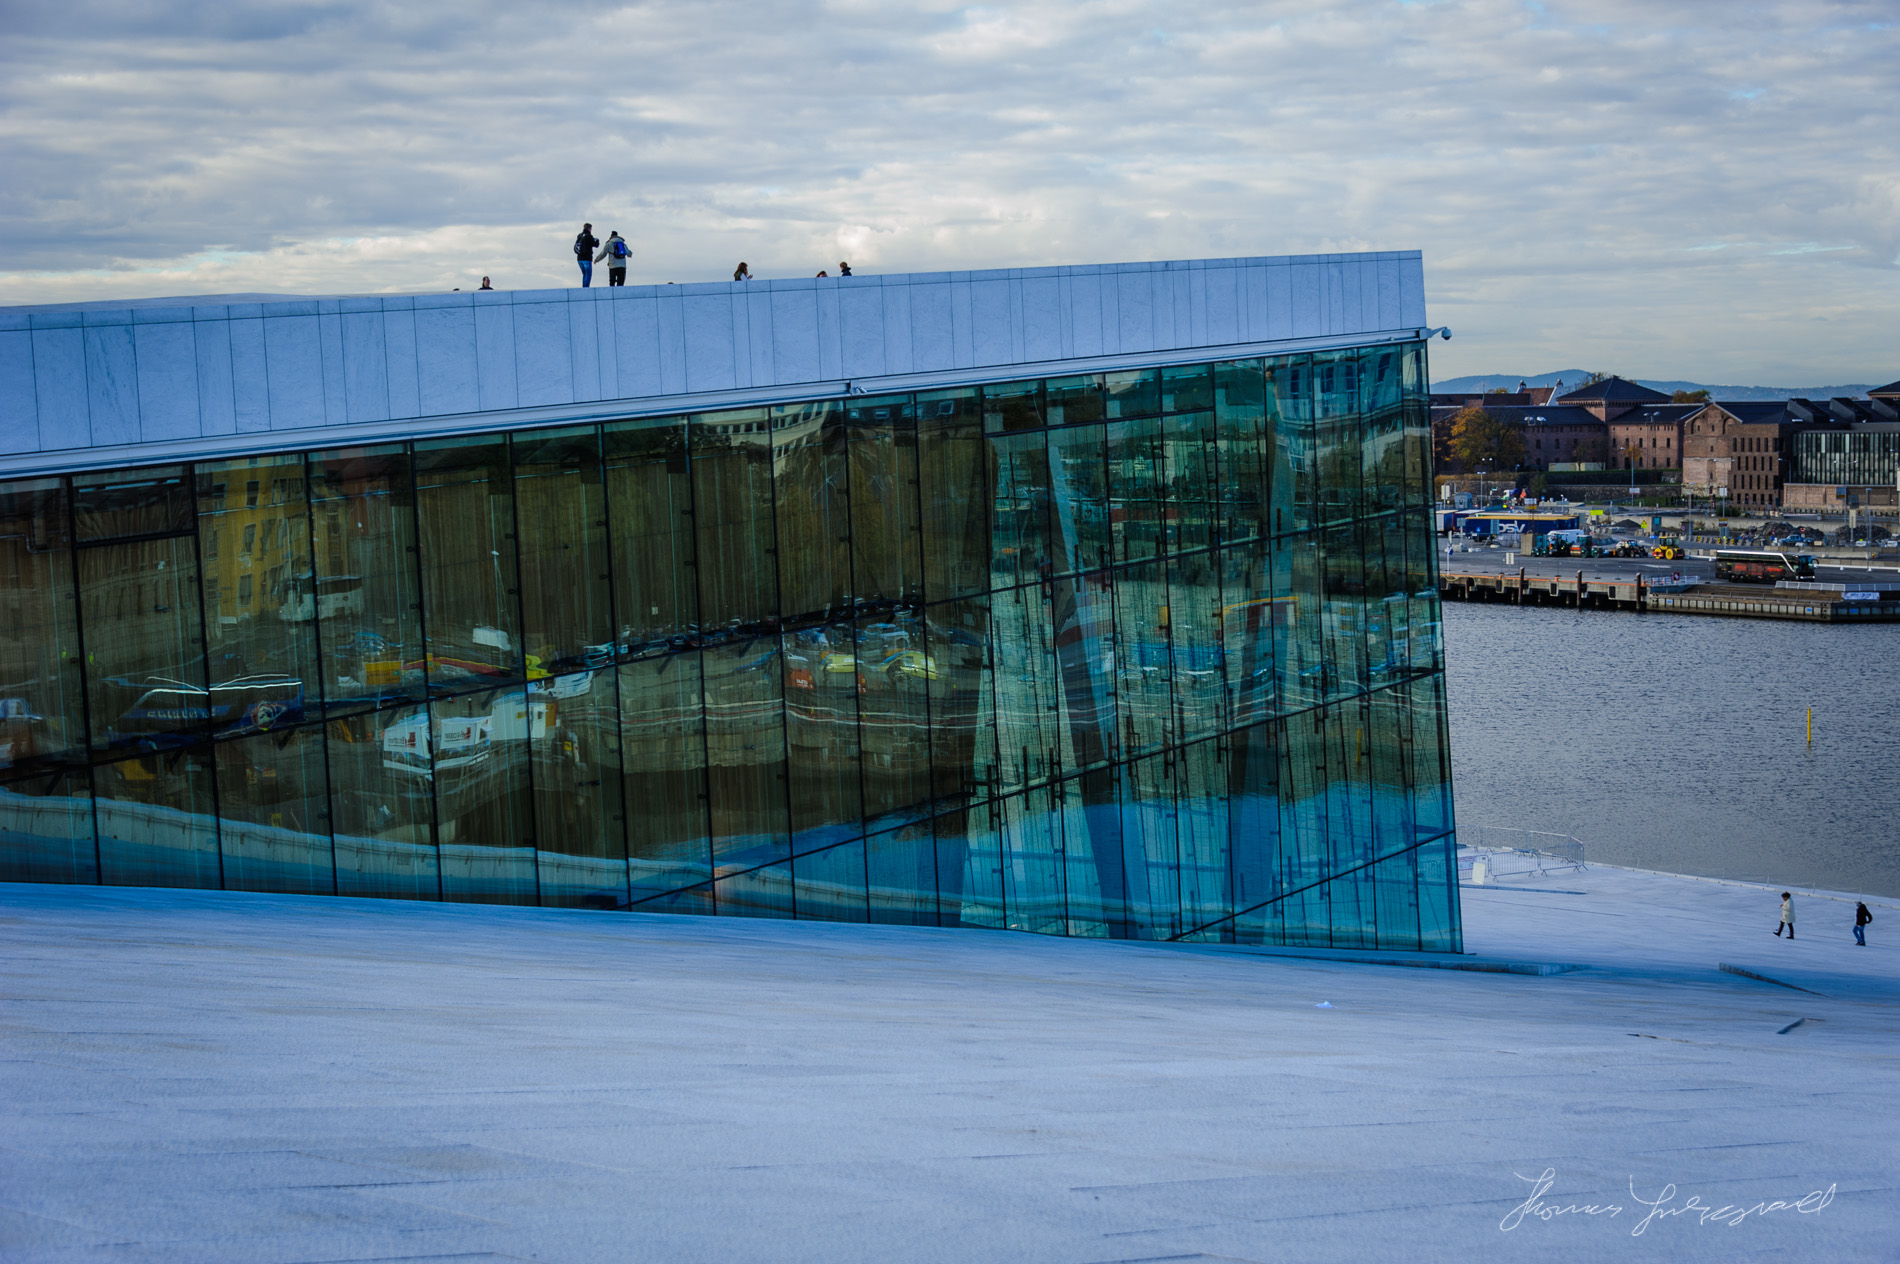 Oslo Opera House Roof